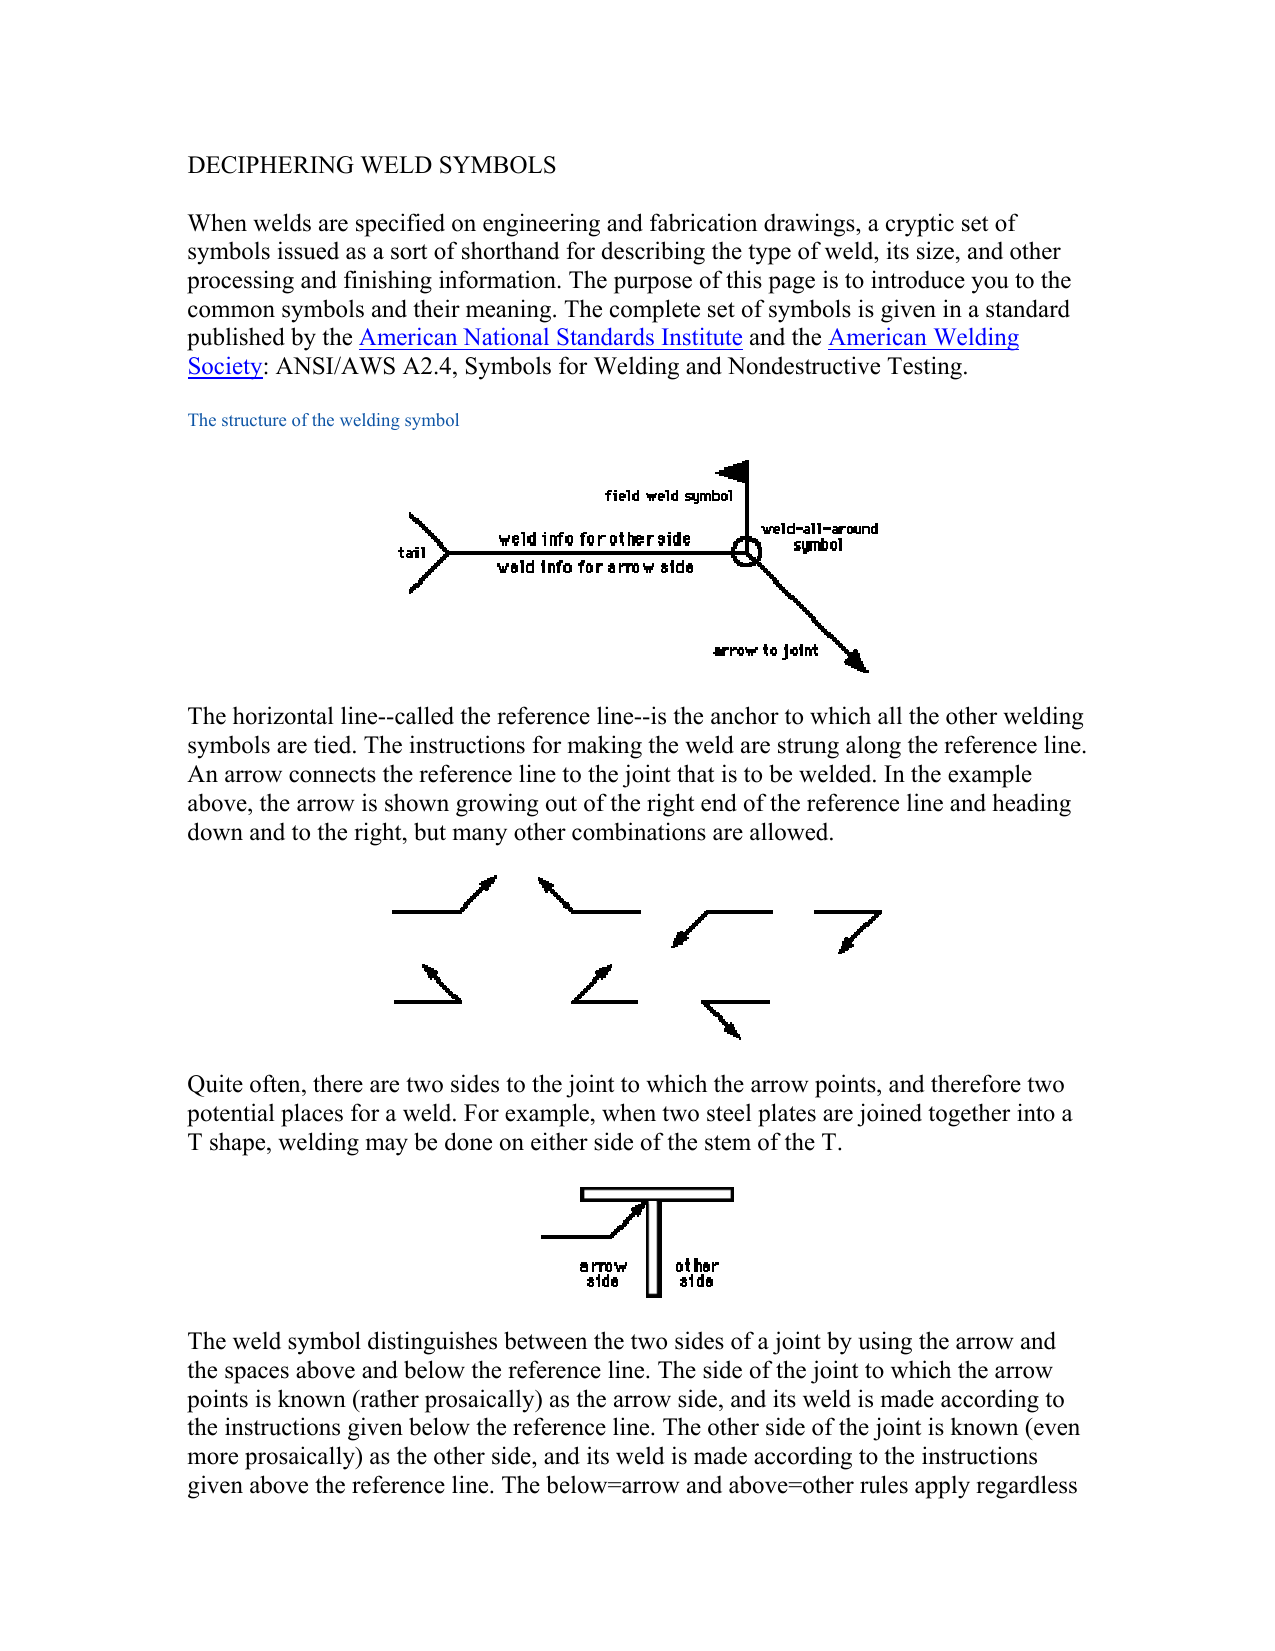 hight resolution of deciphering weld symbols when welds are specified on engineering and fabrication drawings a cryptic set of symbols issued as a sort of shorthand for